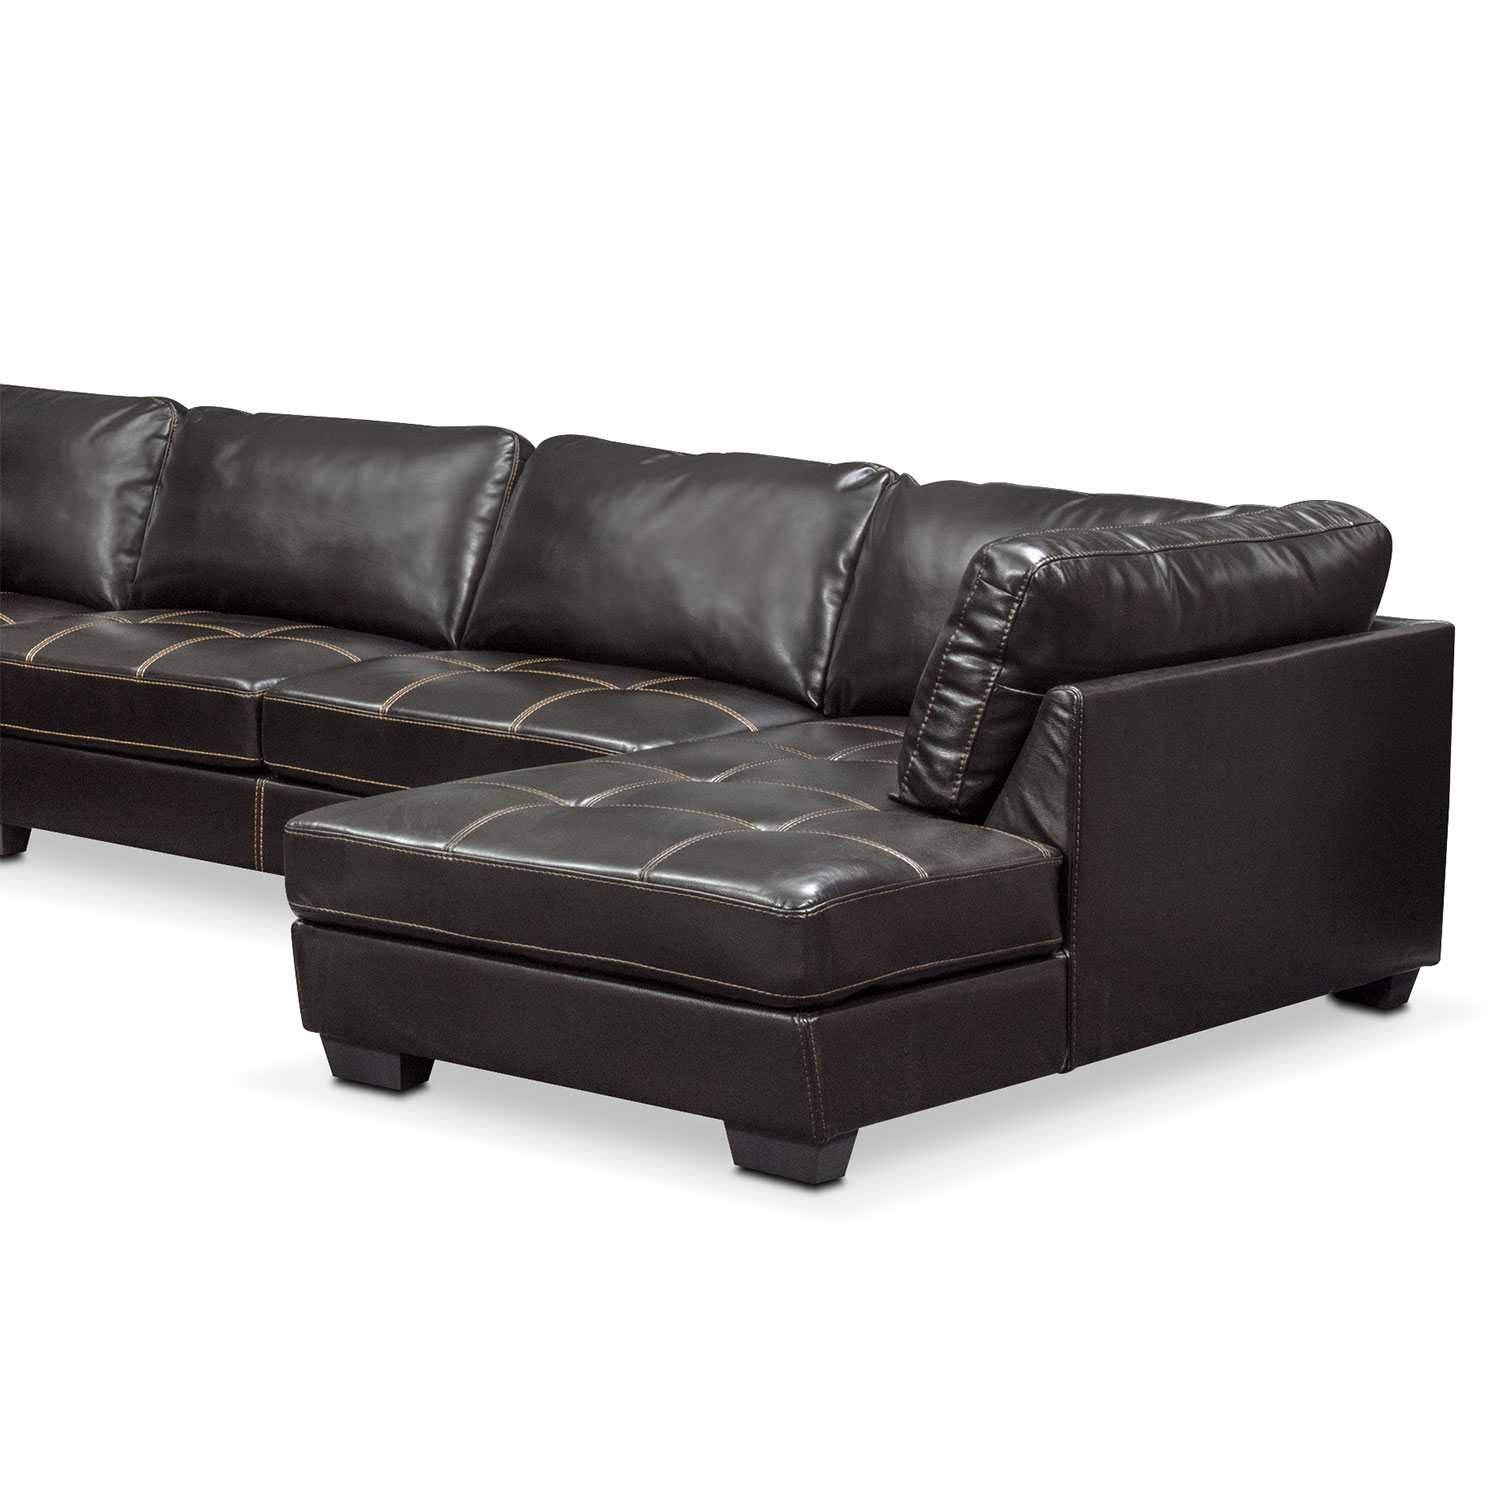 Santana 4 Piece Sectional with Right Facing Chaise Black